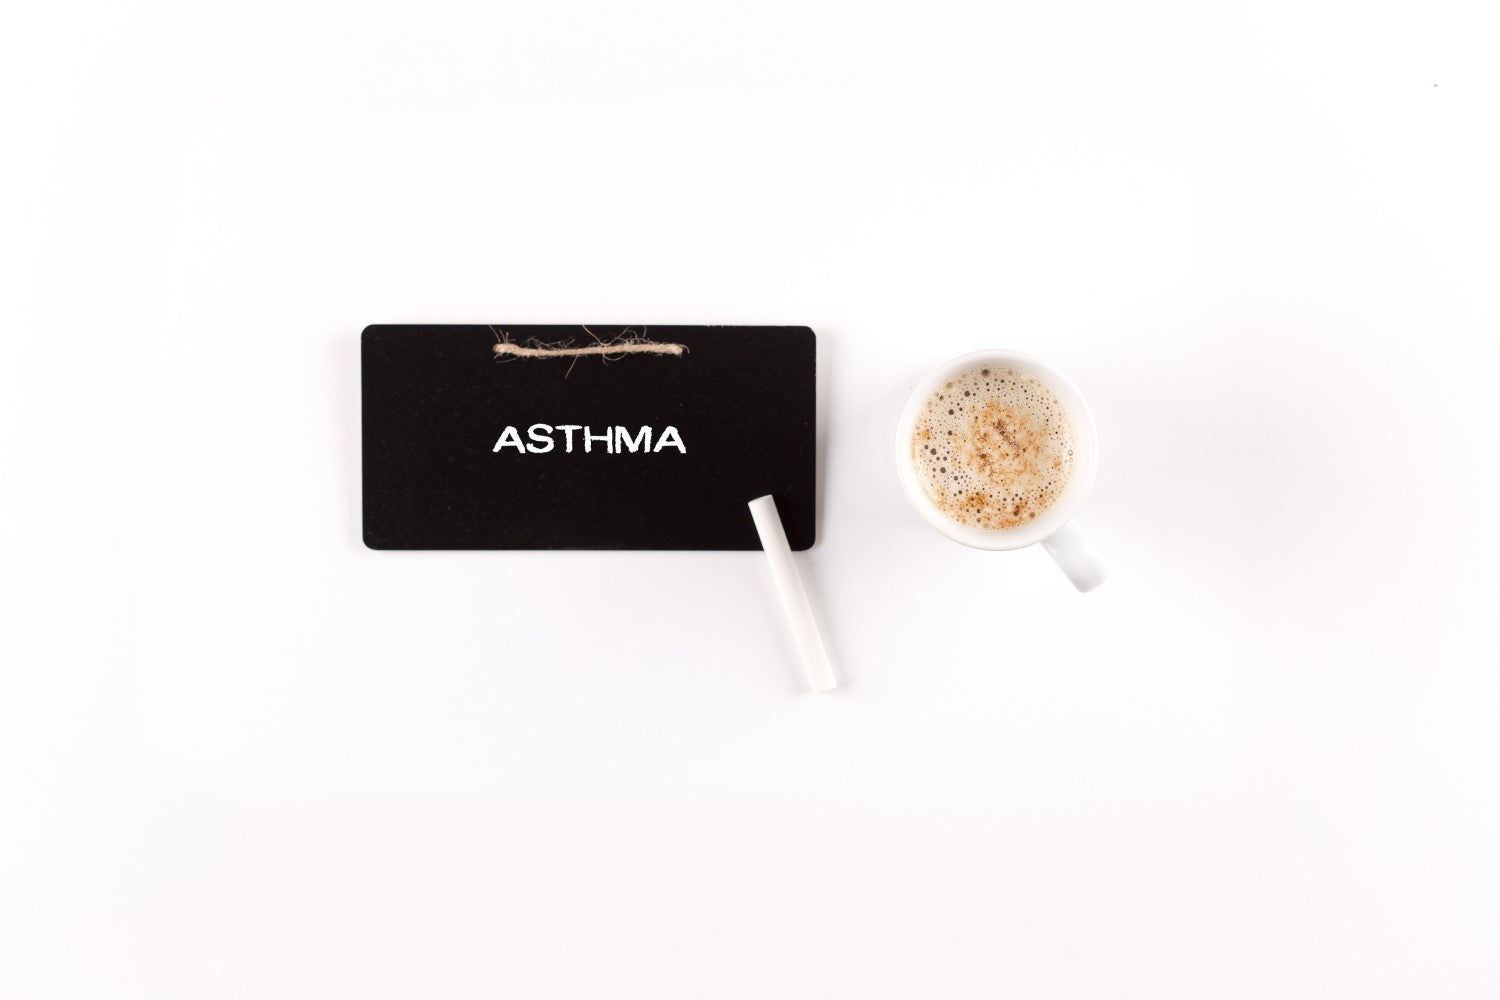 asthma on the board and coffee